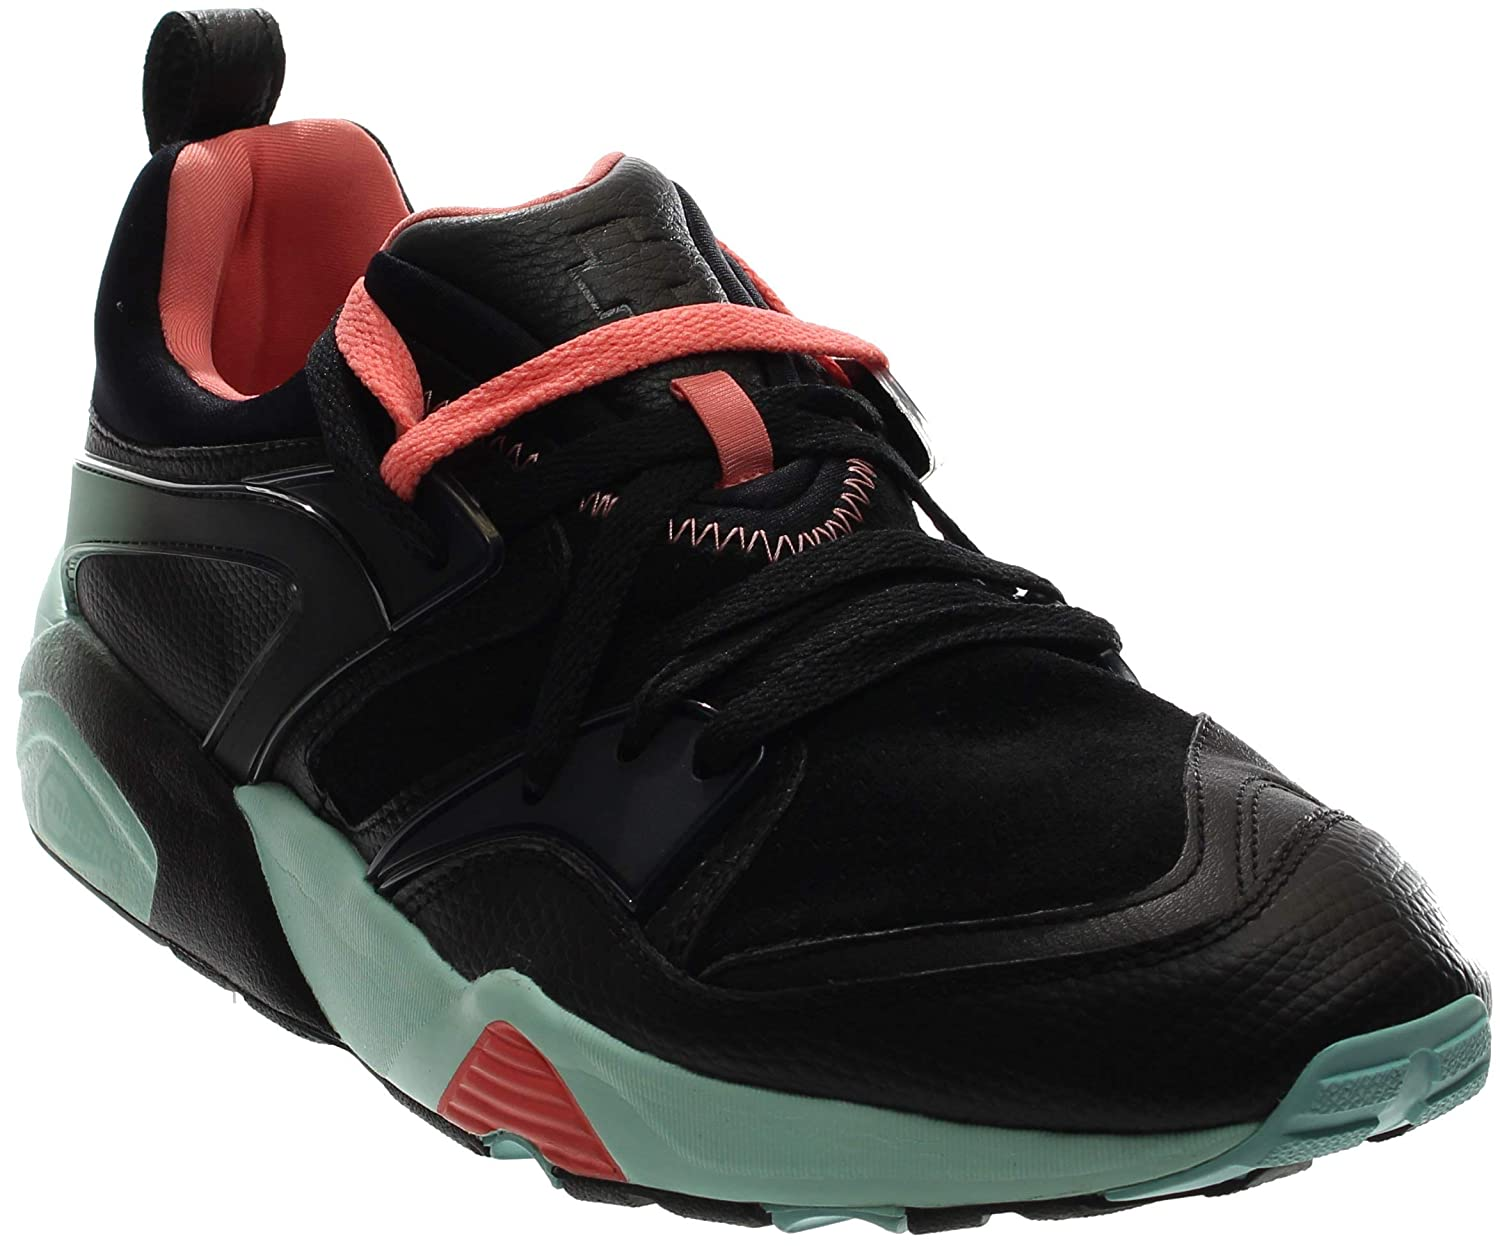 46cc77cc91cde PUMA Mens Blaze of Glory Pink Dolphin Athletic & Sneakers